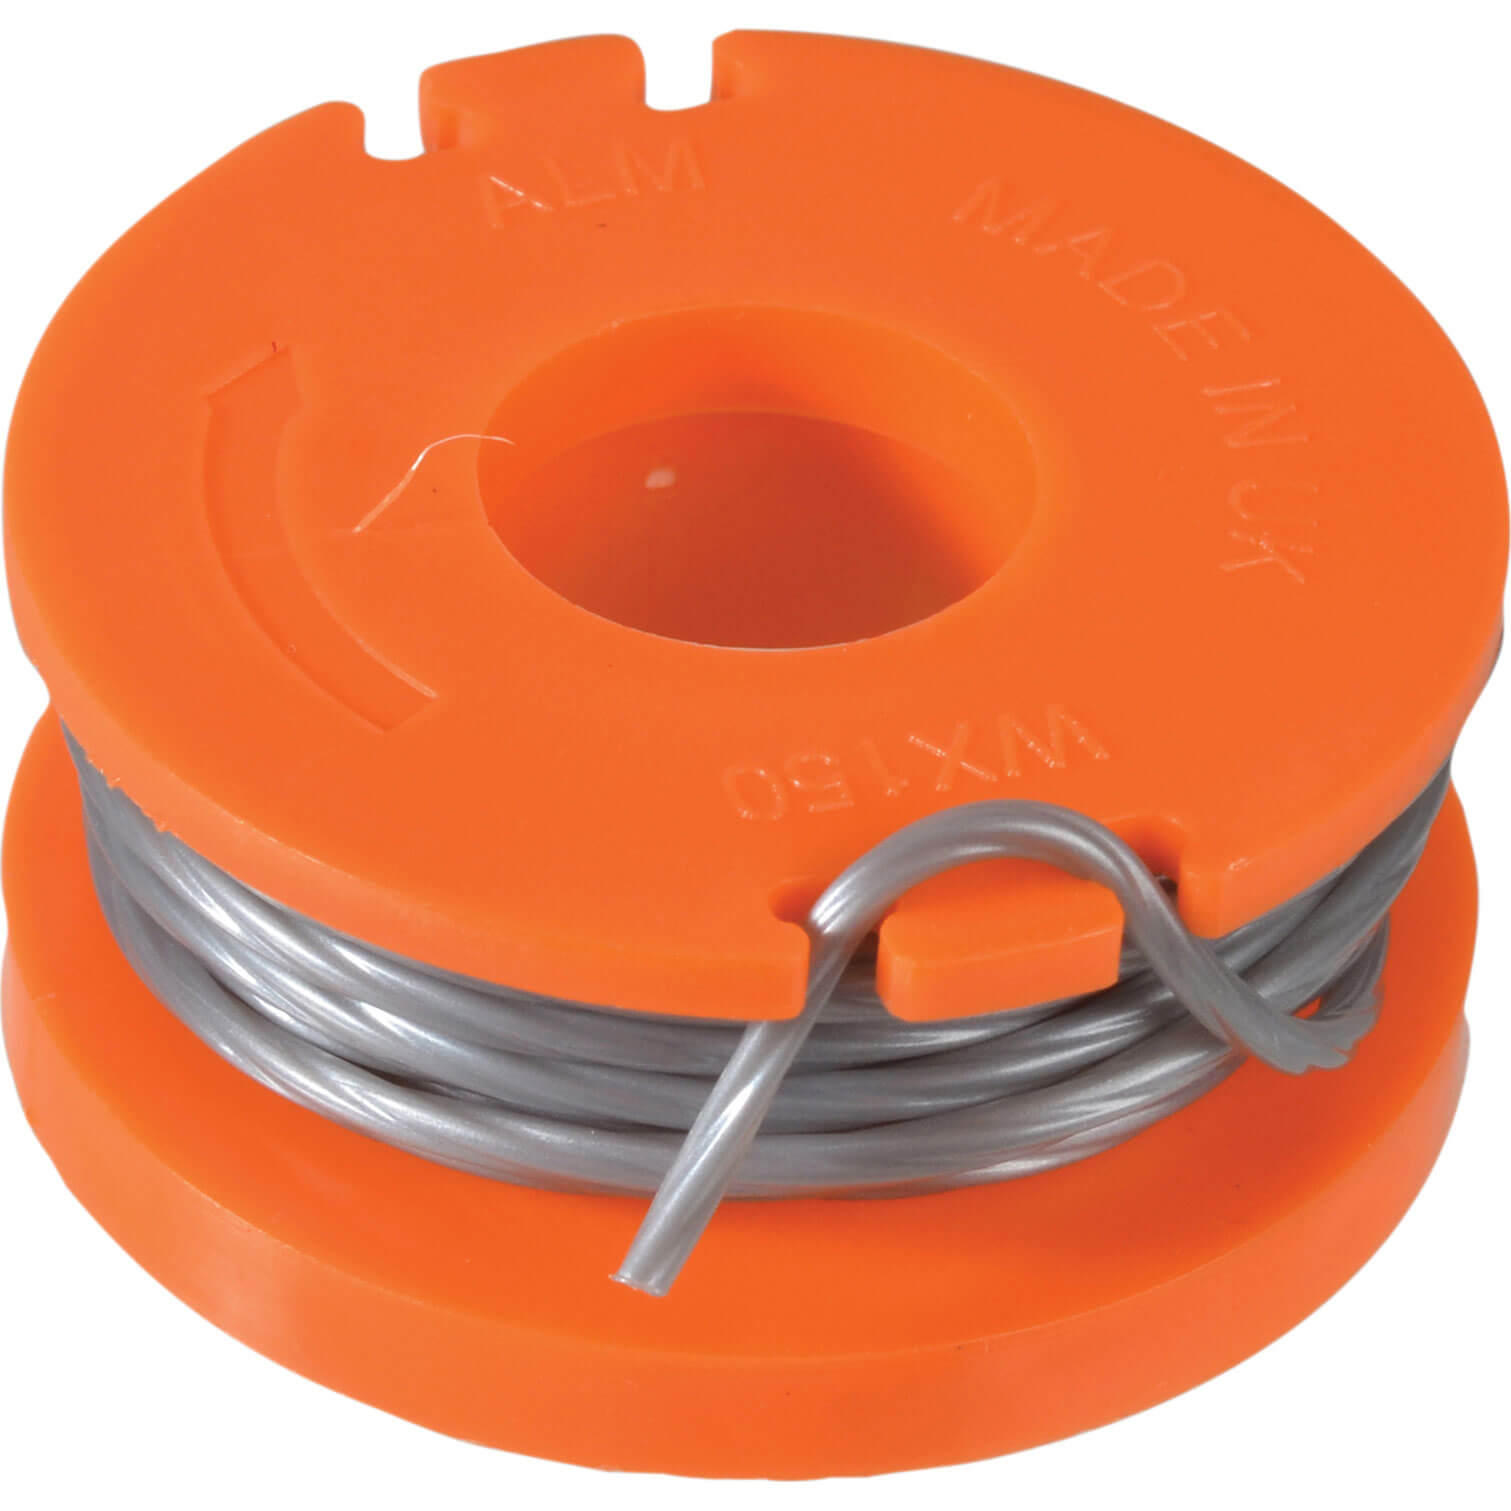 ALM 1.5mm x 2.5m Spool & Line for Various Qualcast 18v Grass Trimmers